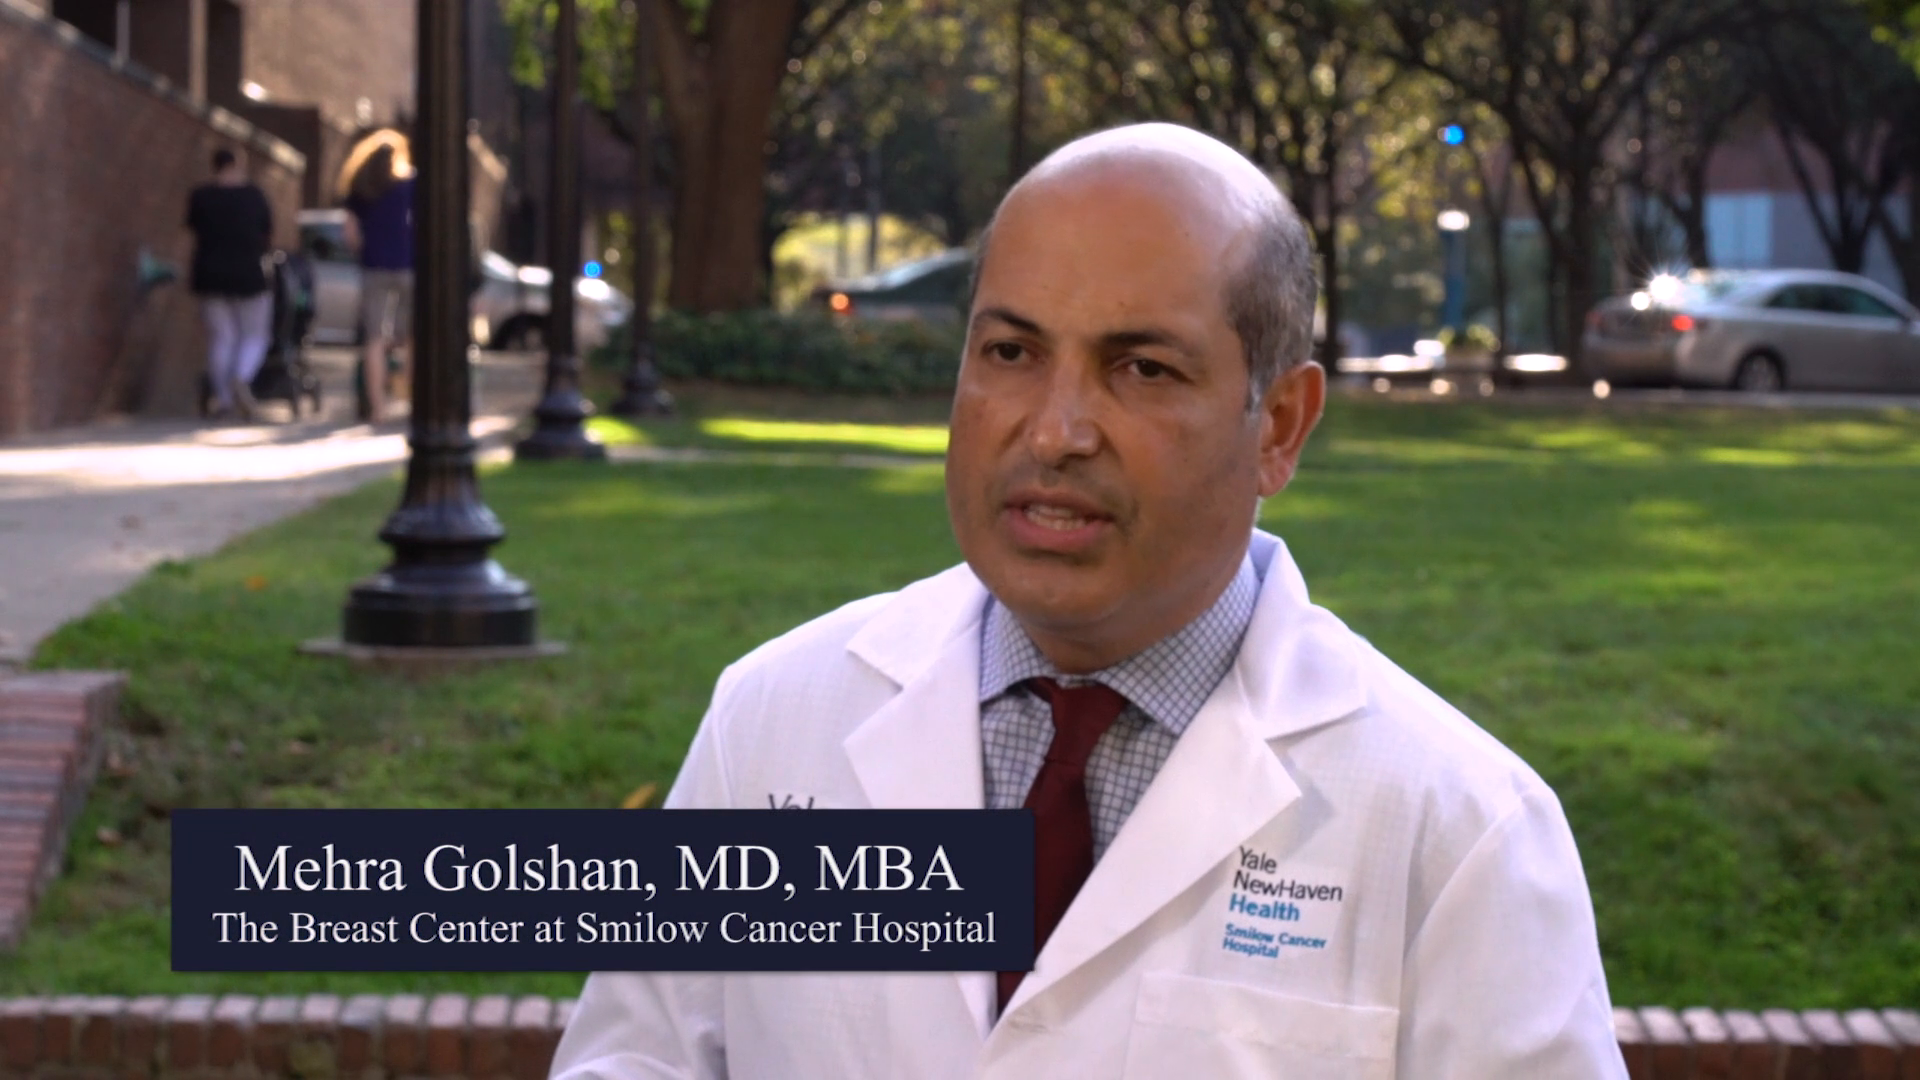 Dr. Mehra Golshan on the Need for Breast Cancer Screening and Warning Signs of the Disease